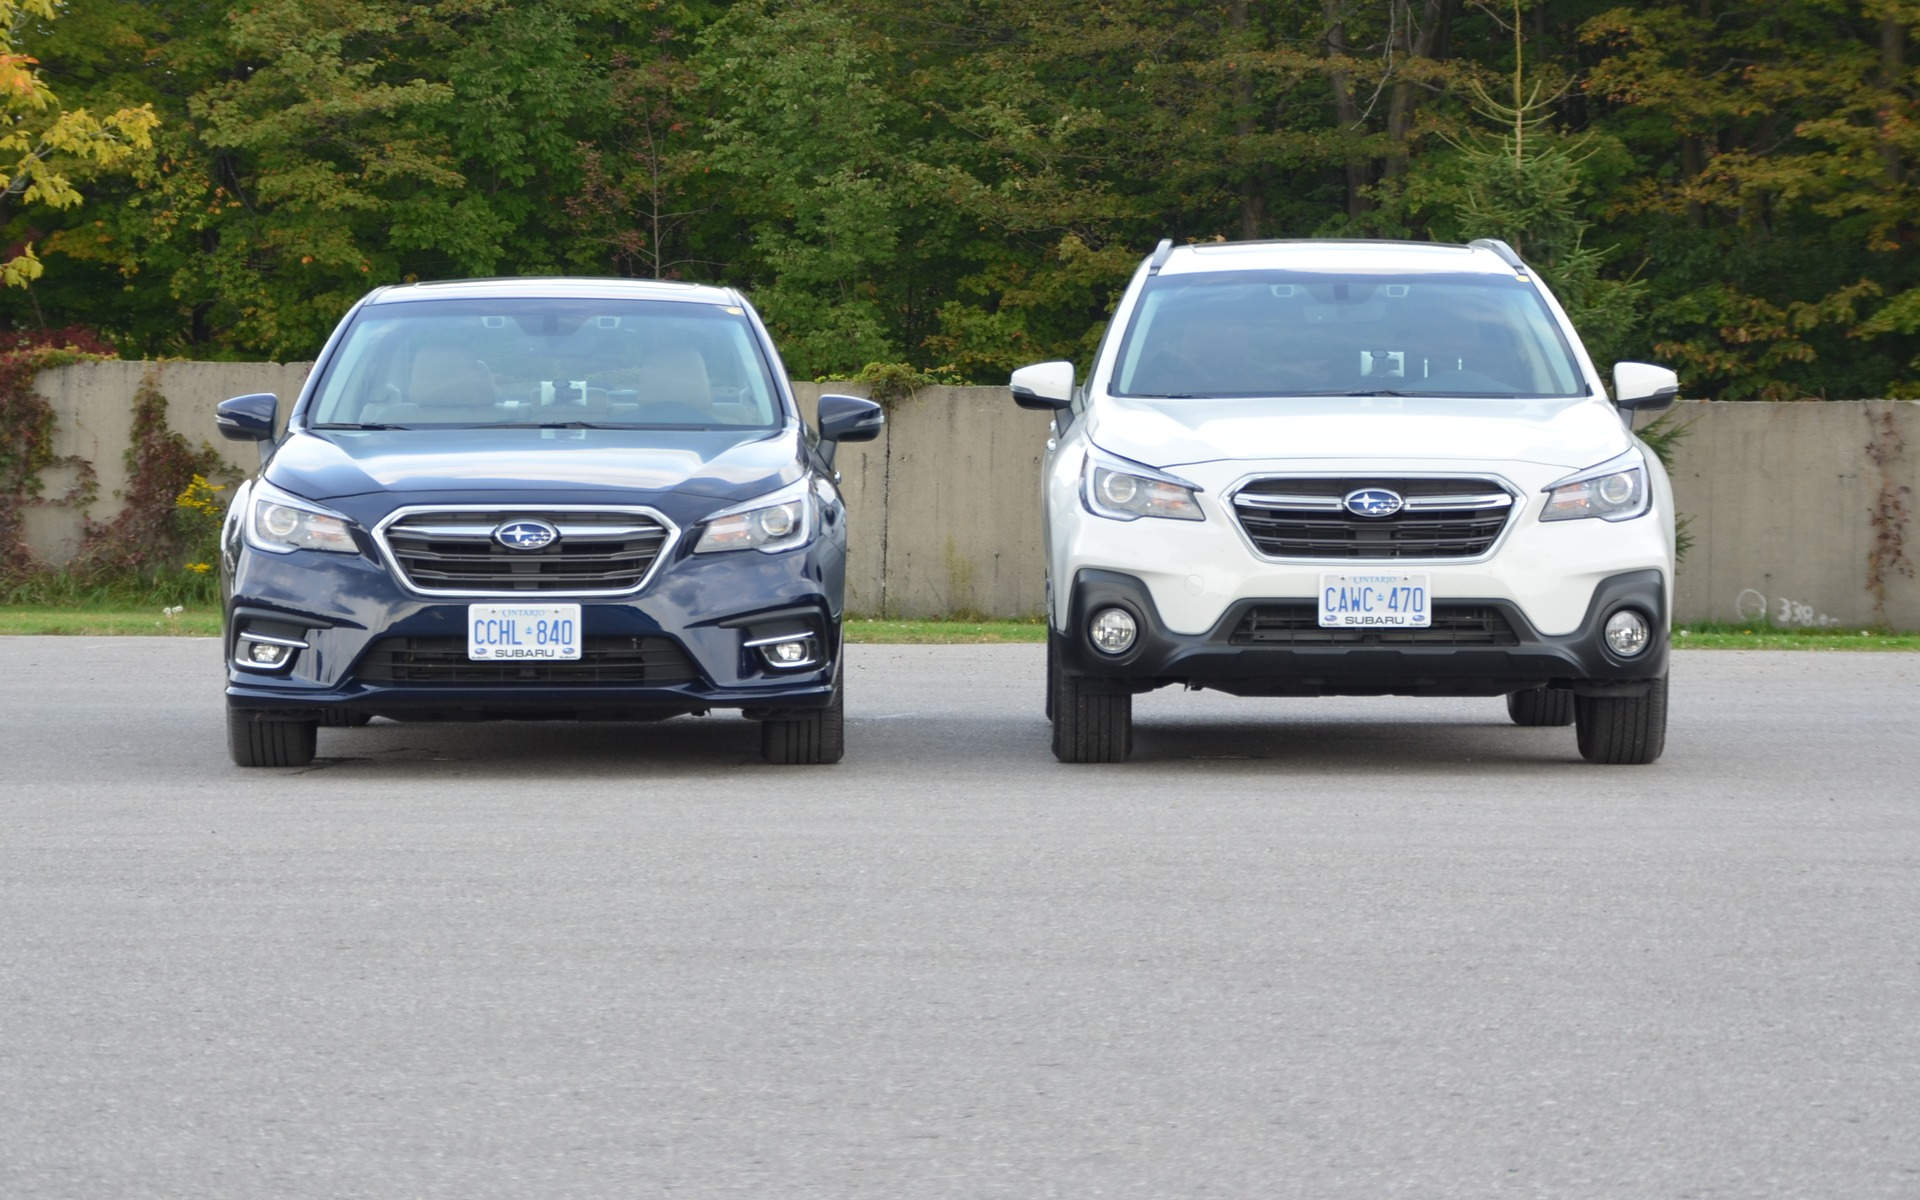 2018 Subaru Legacy and 2018 Subaru Outback